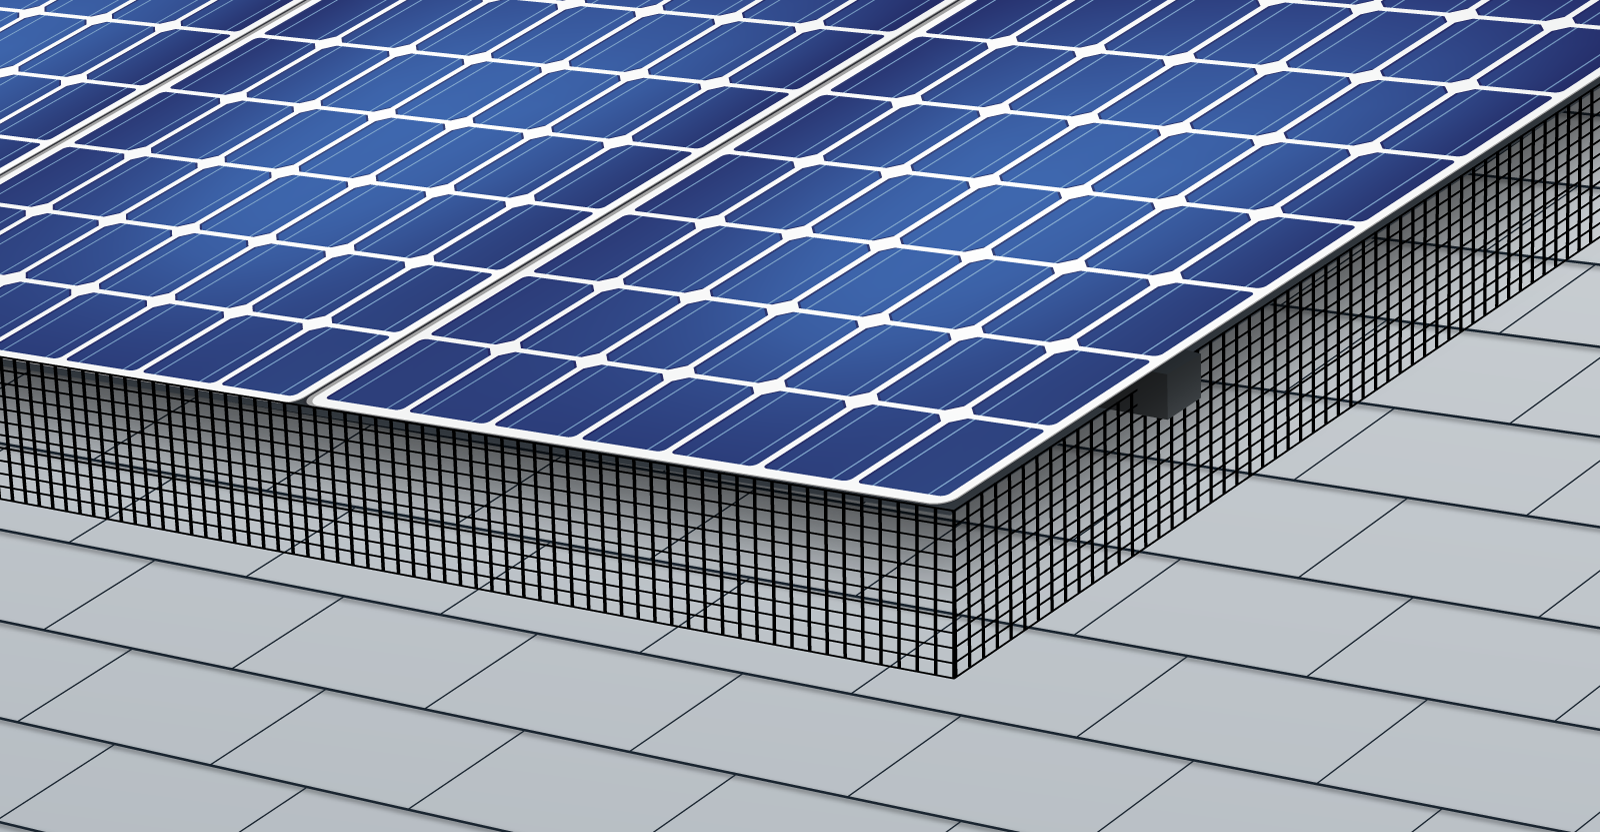 a solar critter guard protecting solar panels on a roof